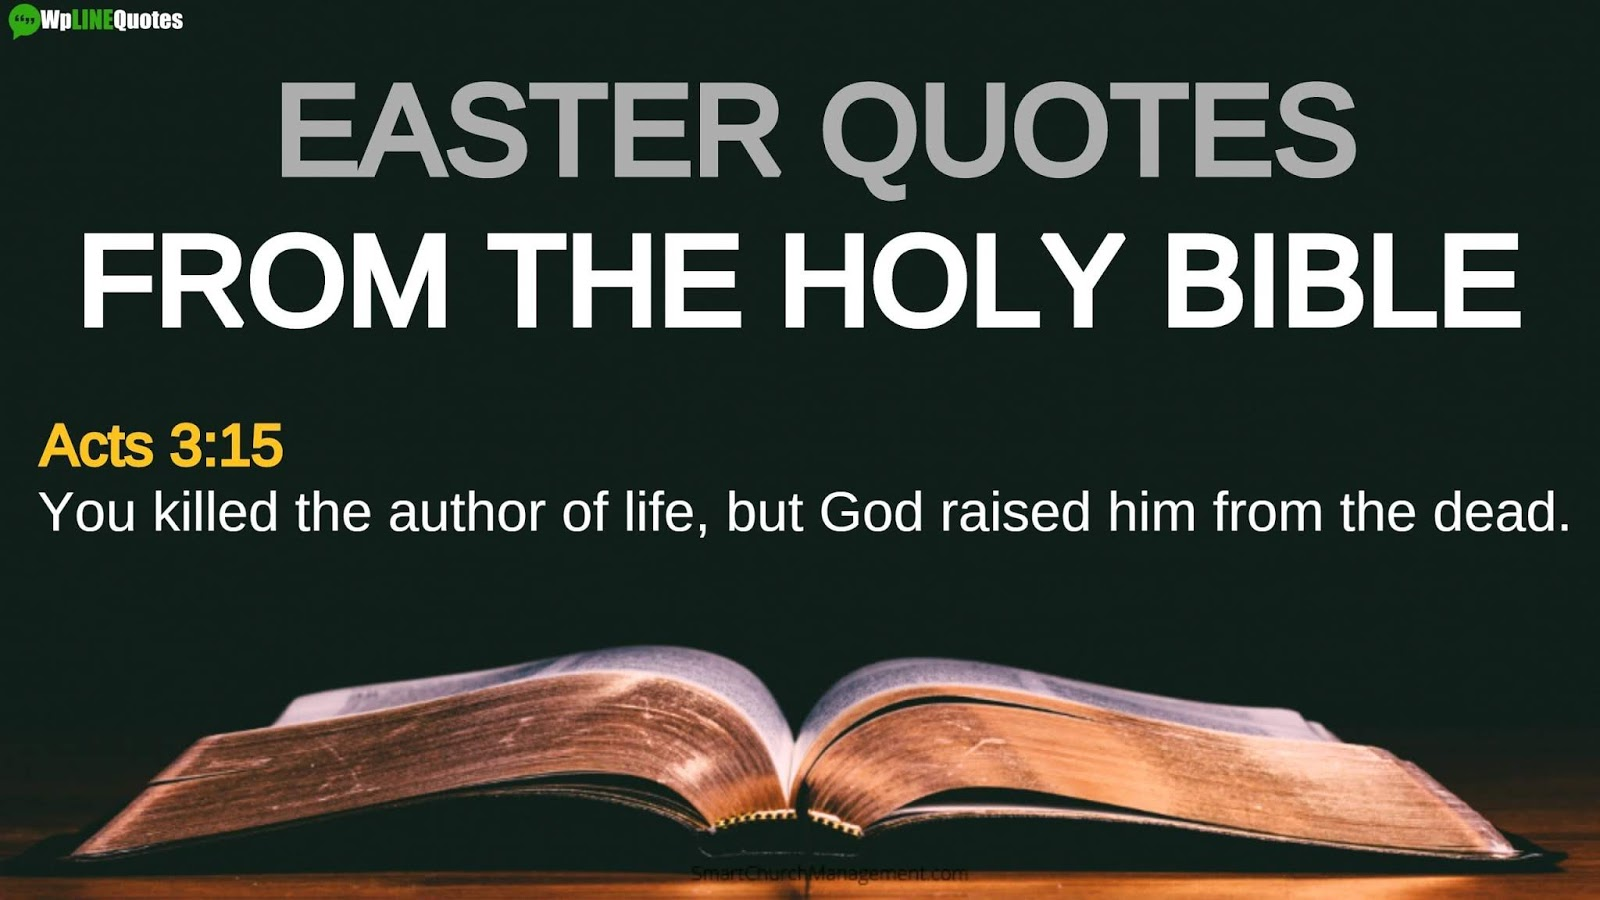 Best 15 Easter Quotes From The Bible To Share With Others On Easter Day